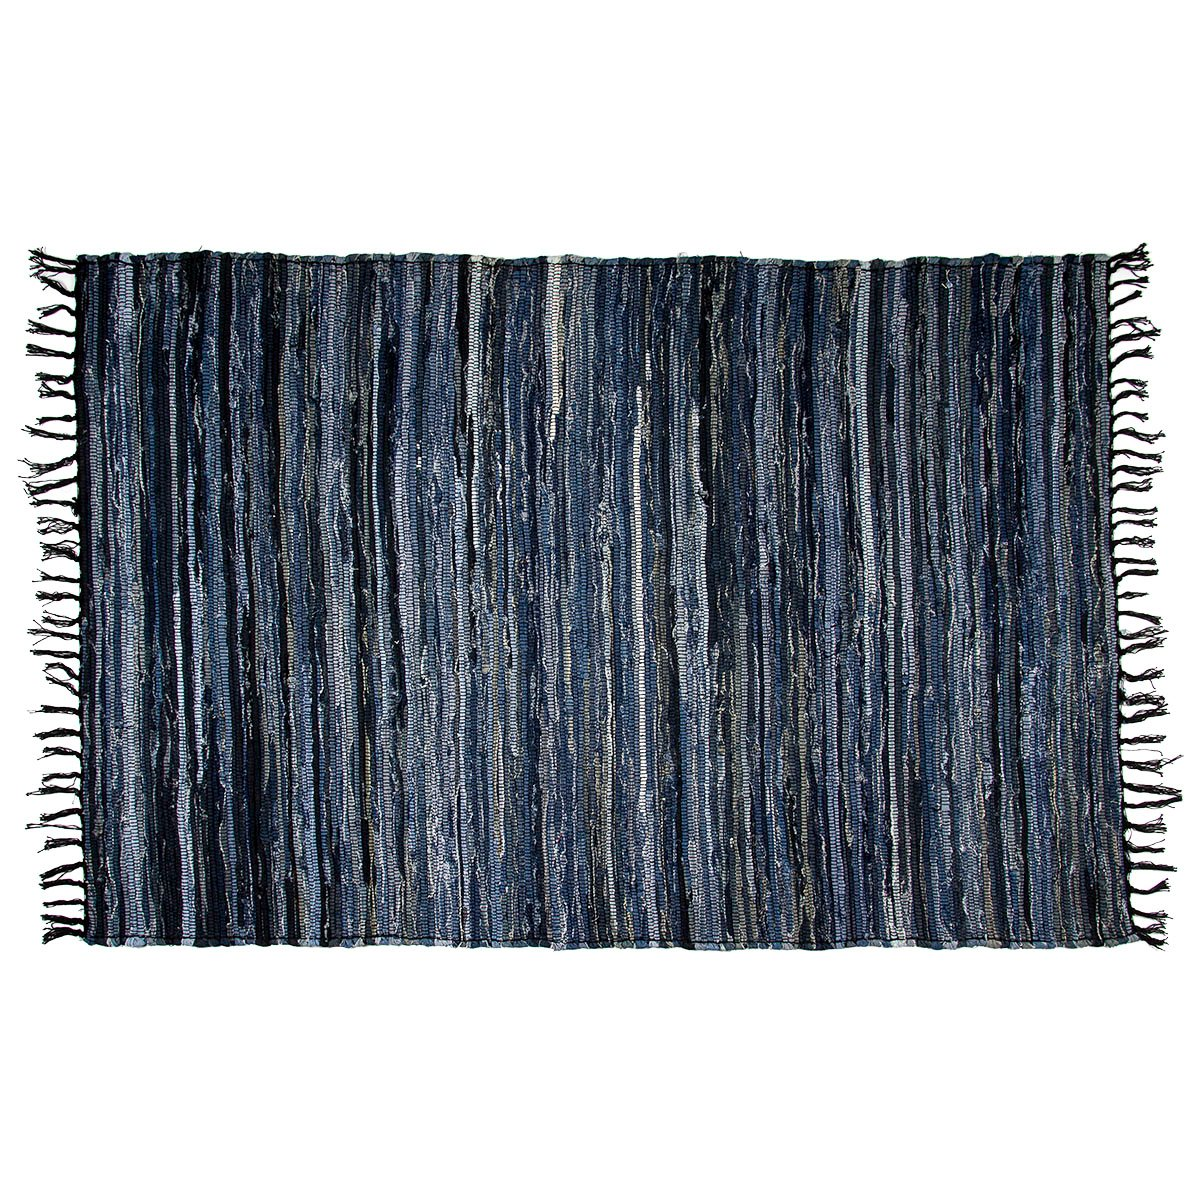 RoyalCollection Denim Chindi Area Rag Rug 100 Cotton Recycled For Living Room Entryway Bedroom Porch Woven Large 4×6